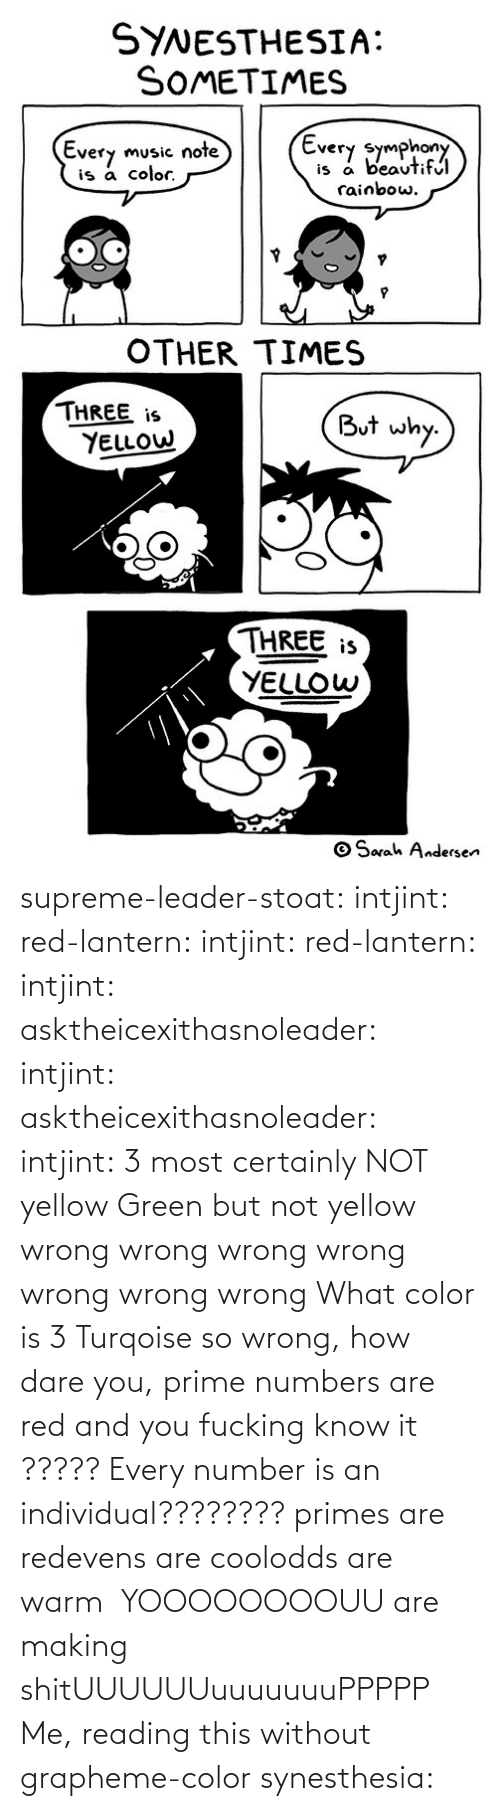 Without: supreme-leader-stoat: intjint:  red-lantern:  intjint:  red-lantern:  intjint:  asktheicexithasnoleader:  intjint:   asktheicexithasnoleader:  intjint:  3 most certainly NOT yellow   Green but not yellow  wrong wrong wrong wrong wrong wrong wrong    What color is 3  Turqoise  so wrong, how dare you, prime numbers are red and you fucking know it   ????? Every number is an individual????????  primes are redevens are coolodds are warm   YOOOOOOOOUU are making shitUUUUUUuuuuuuuPPPPP  Me, reading this without grapheme-color synesthesia: